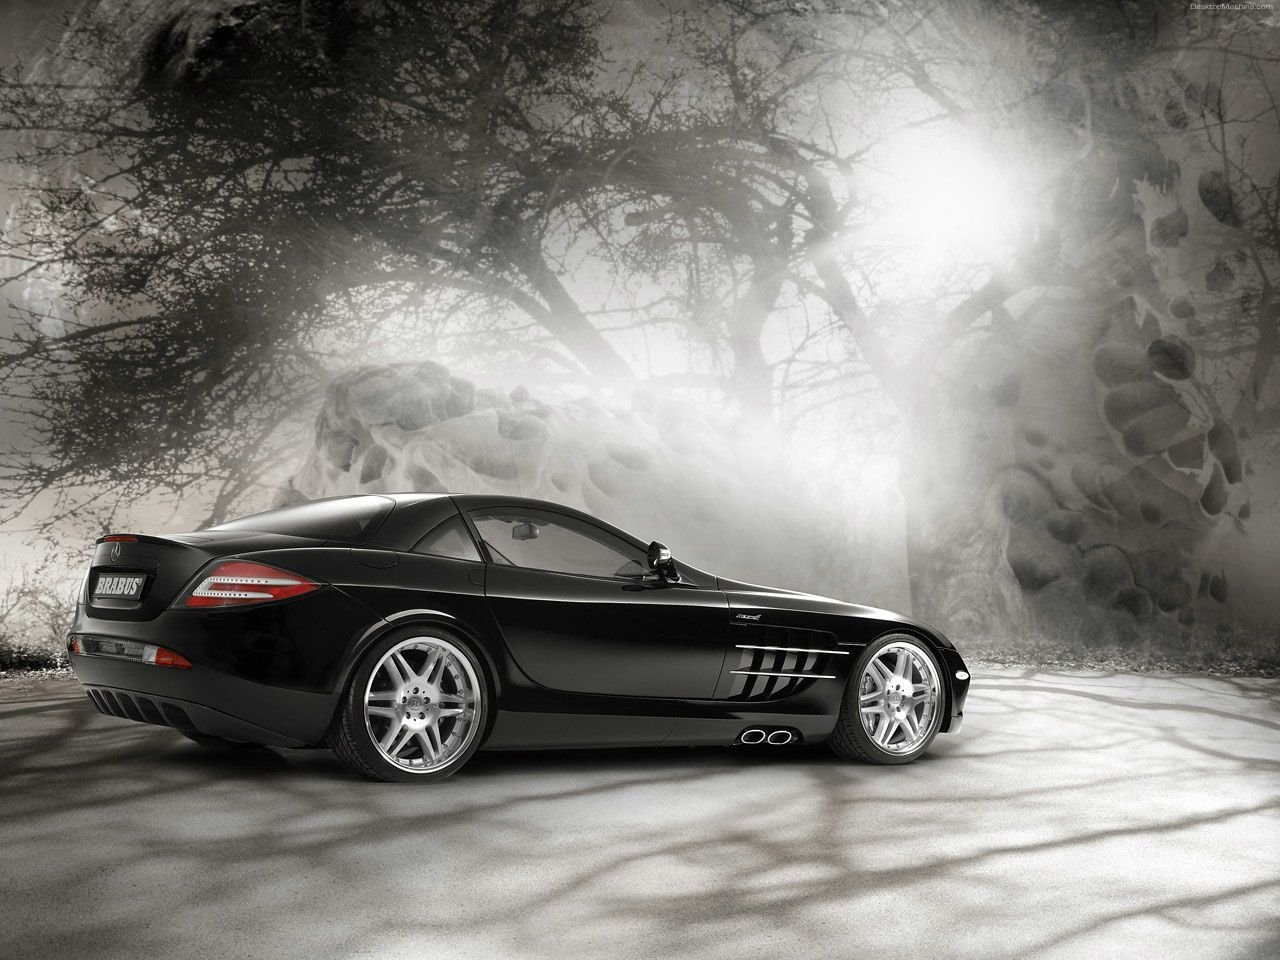 1957 mercedes-benz hd wallpapers | background images - wallpaper abyss